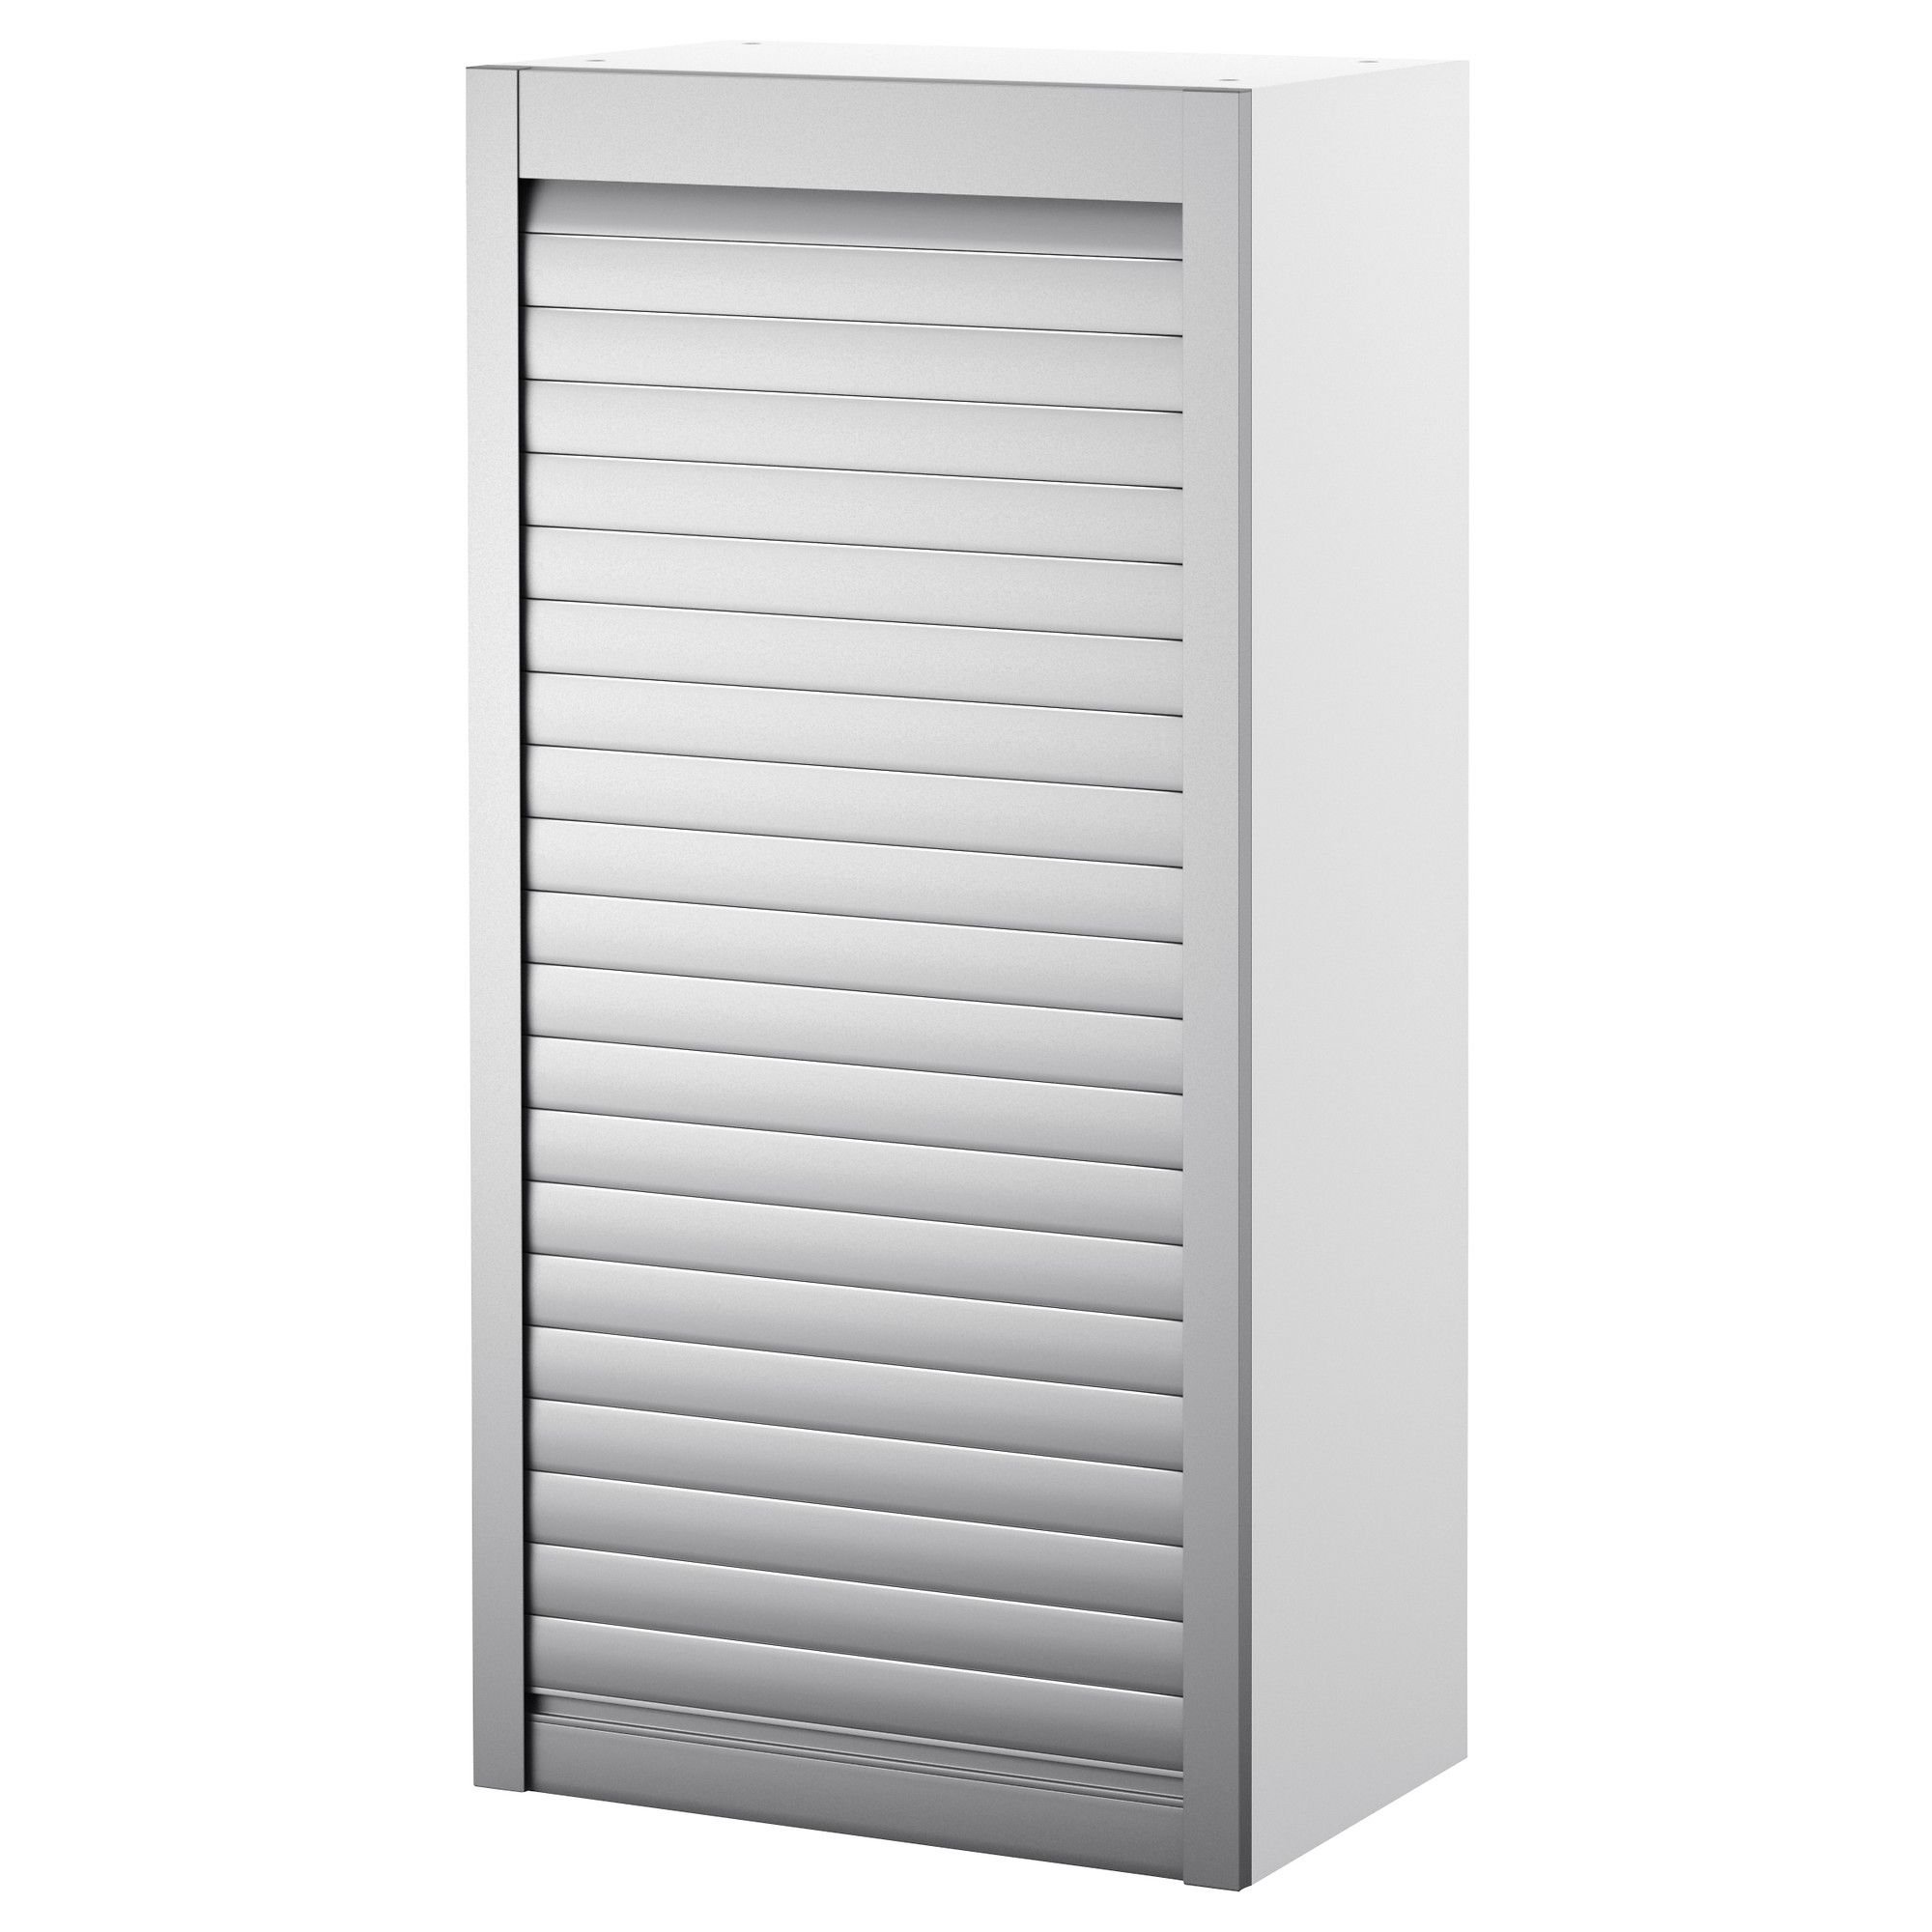 Shutters For Kitchen Cabinets Space Solves Search For A Kitchen Cupboard With A Rolling Shutter